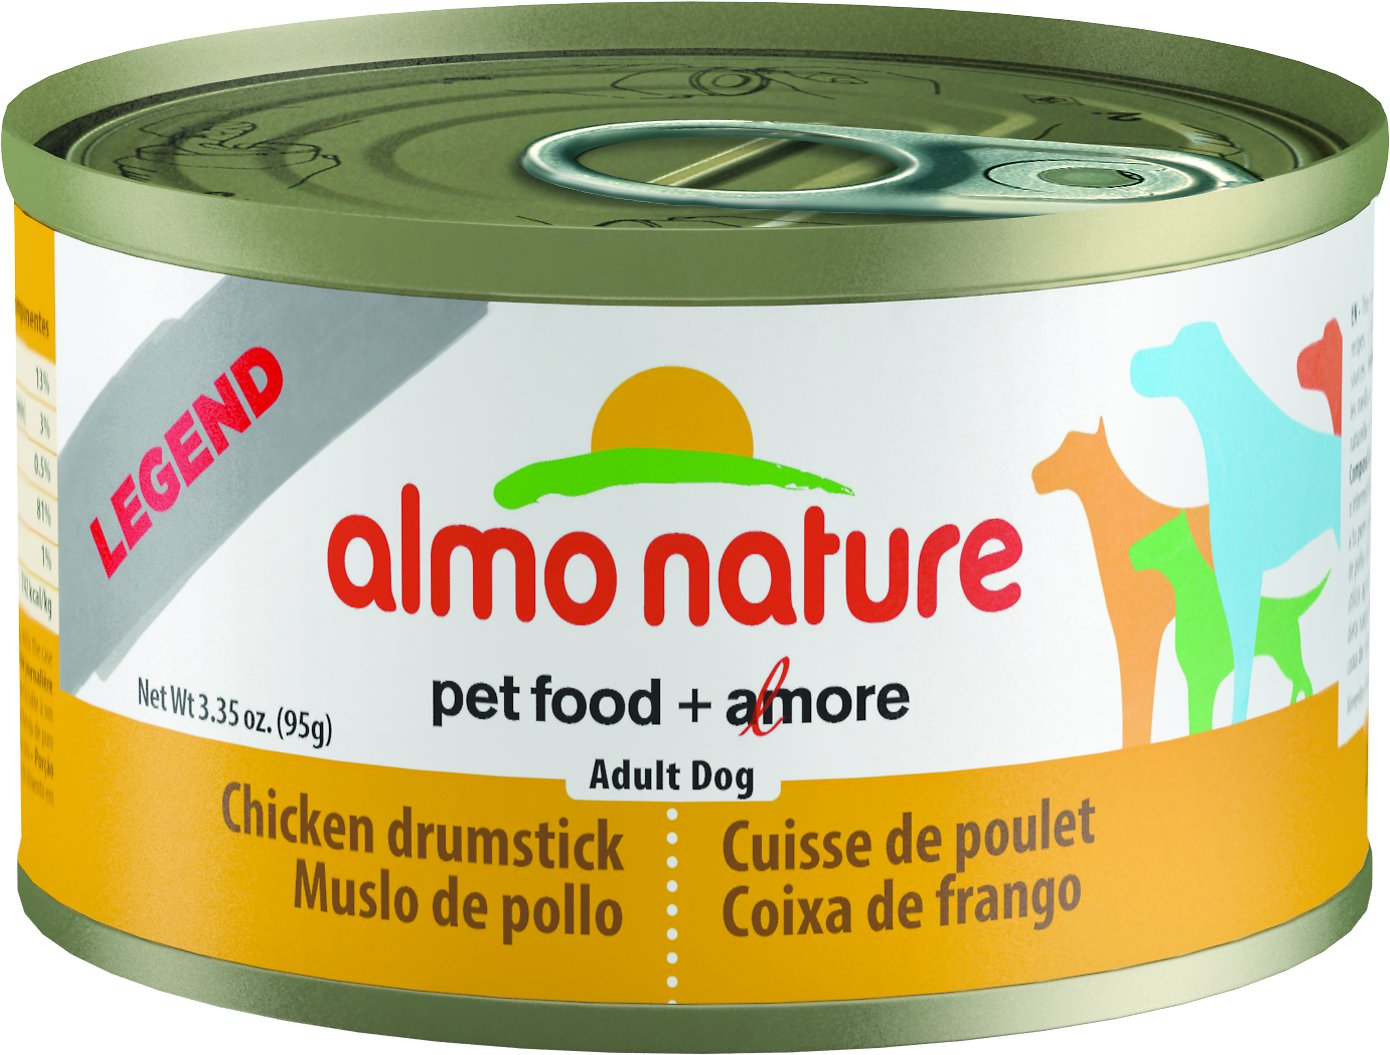 Almo Nature Legend Chicken Drumstick Adult Grain-Free Canned Dog Food